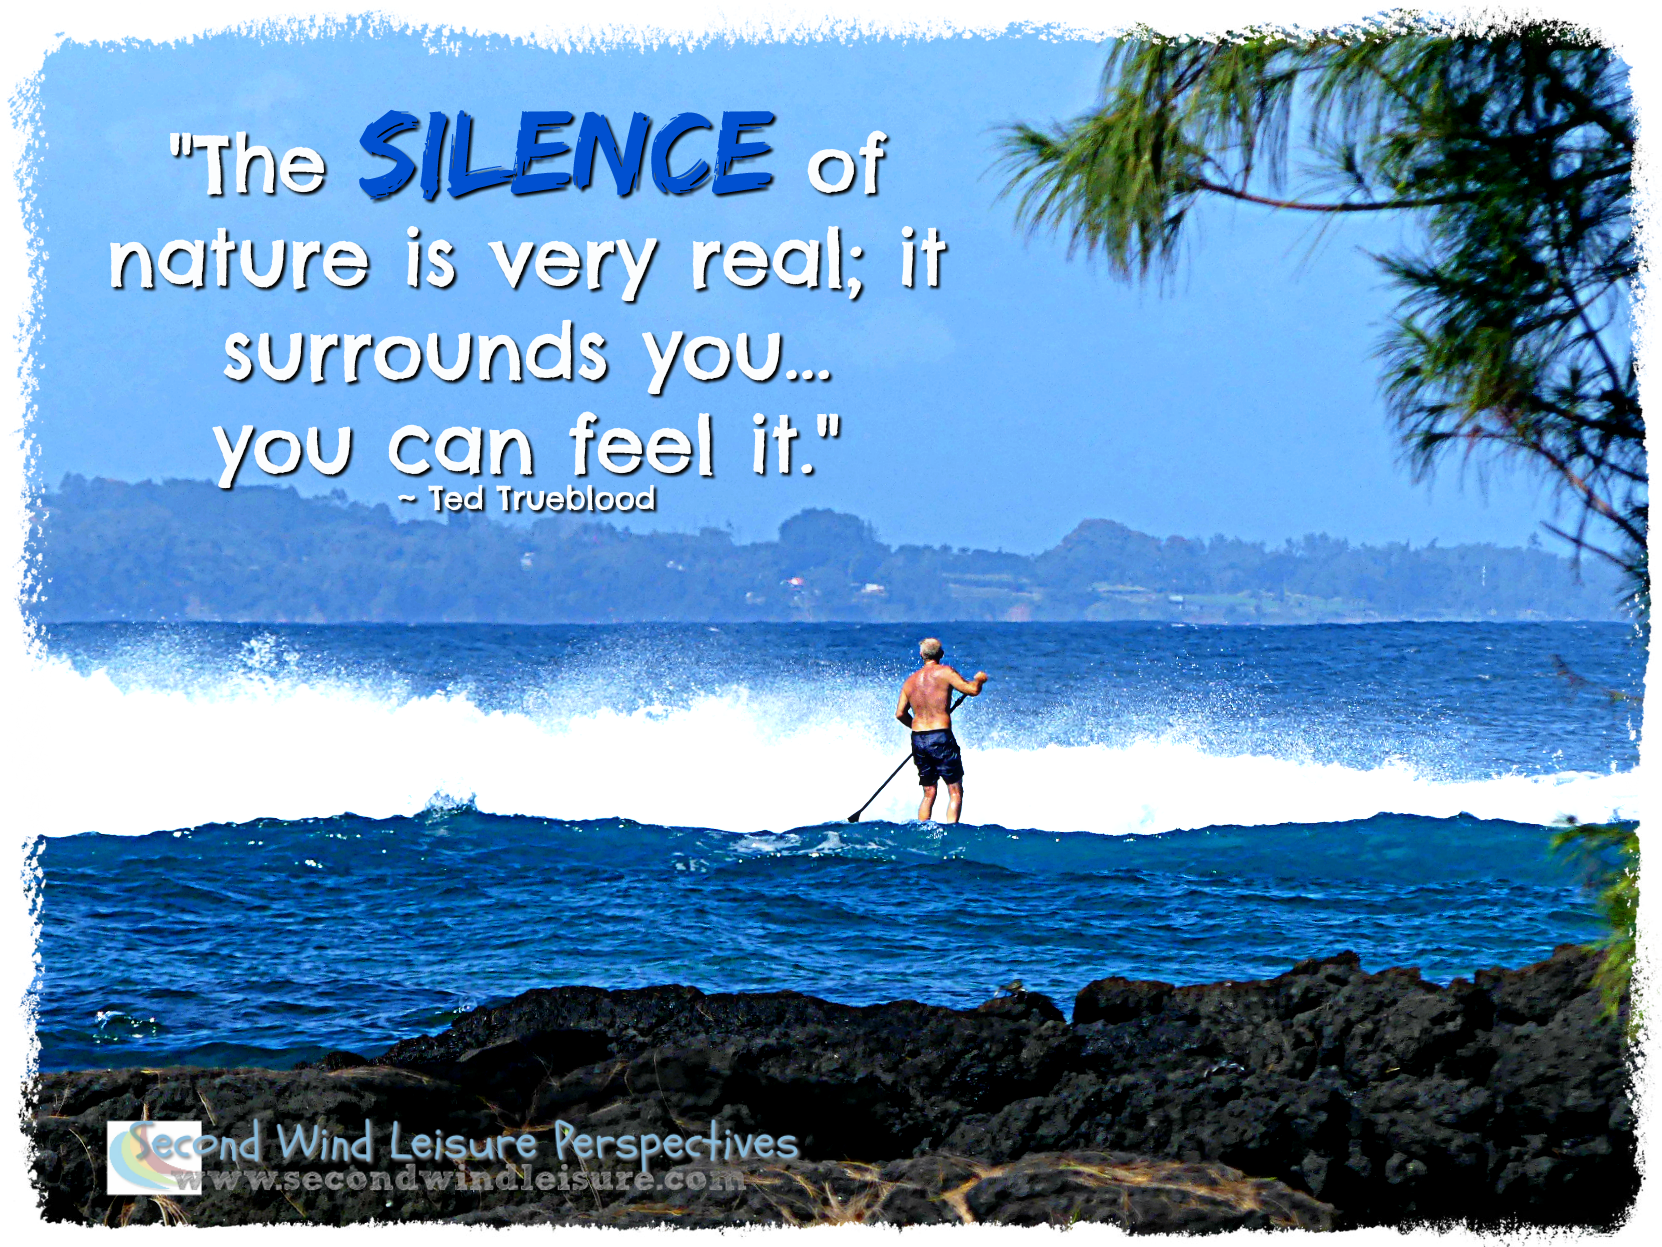 The silence of nature is very real...